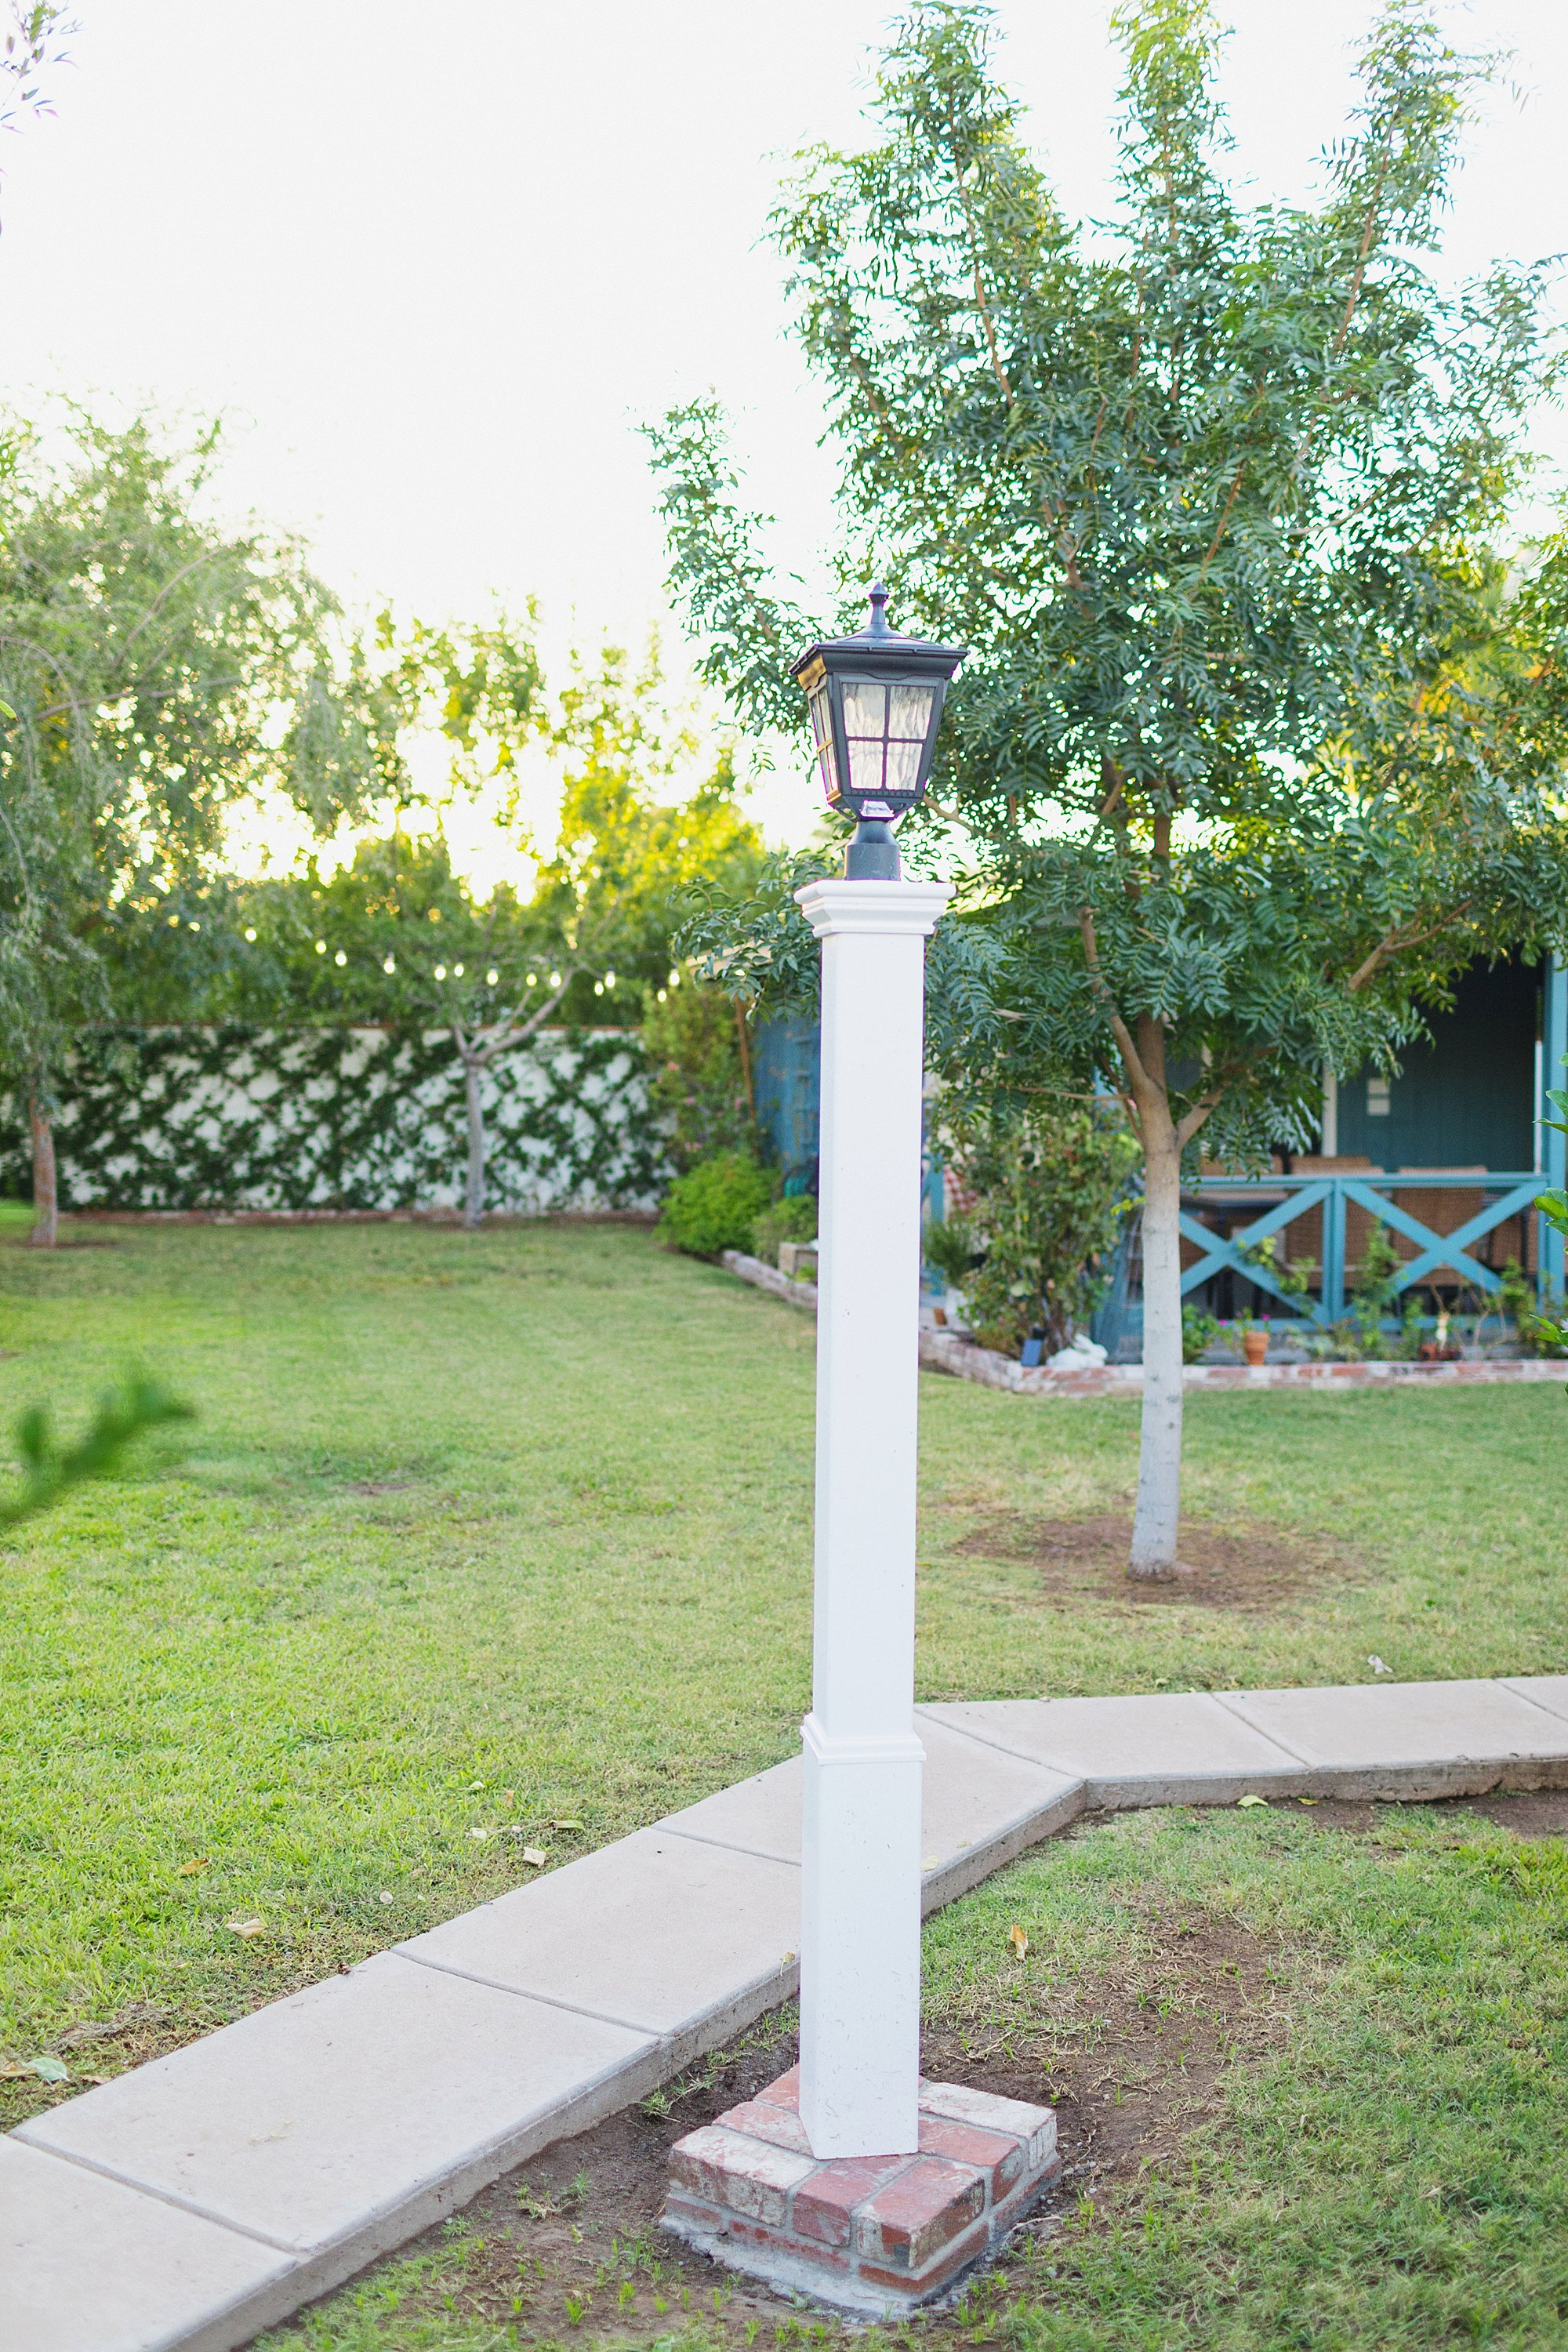 solar light on lamp post affordable no electrician bright LED warm light how to on the blog! coastal style